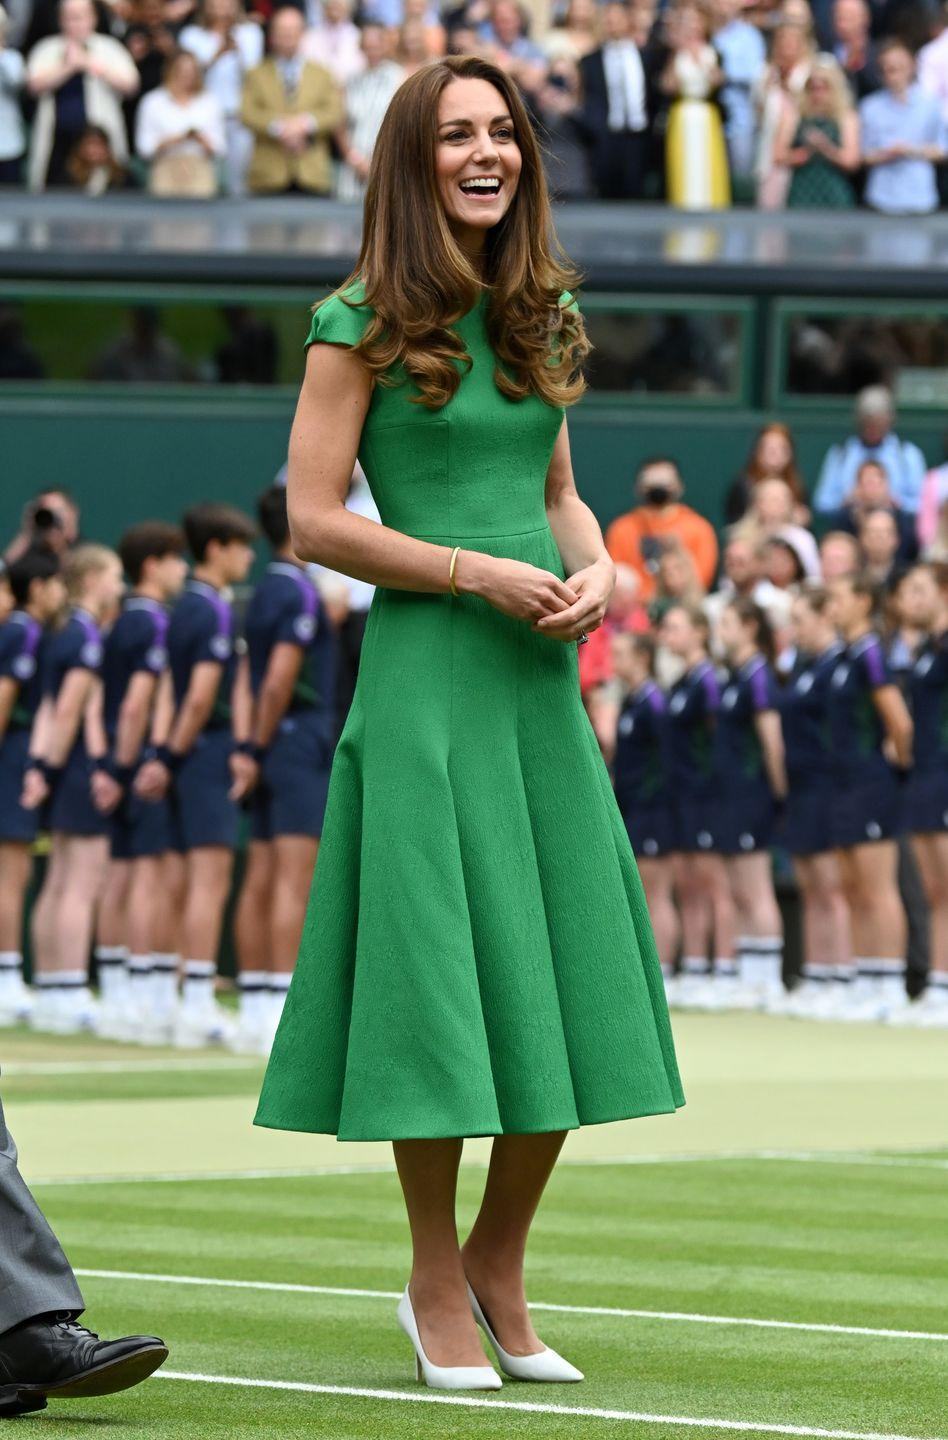 """<p>The Duchess coordinated with Wimbledon's grass courts when she <a href=""""https://www.townandcountrymag.com/society/tradition/a36987867/kate-middleton-prince-william-wimbledon-ladies-final-photos-2021/"""" rel=""""nofollow noopener"""" target=""""_blank"""" data-ylk=""""slk:attended the ladies' singles final"""" class=""""link rapid-noclick-resp"""">attended the ladies' singles final</a>. To present the trophy, Kate chose a Kelly green, pleated Emilia Wickstead dress and white pointed-toe pumps. </p>"""